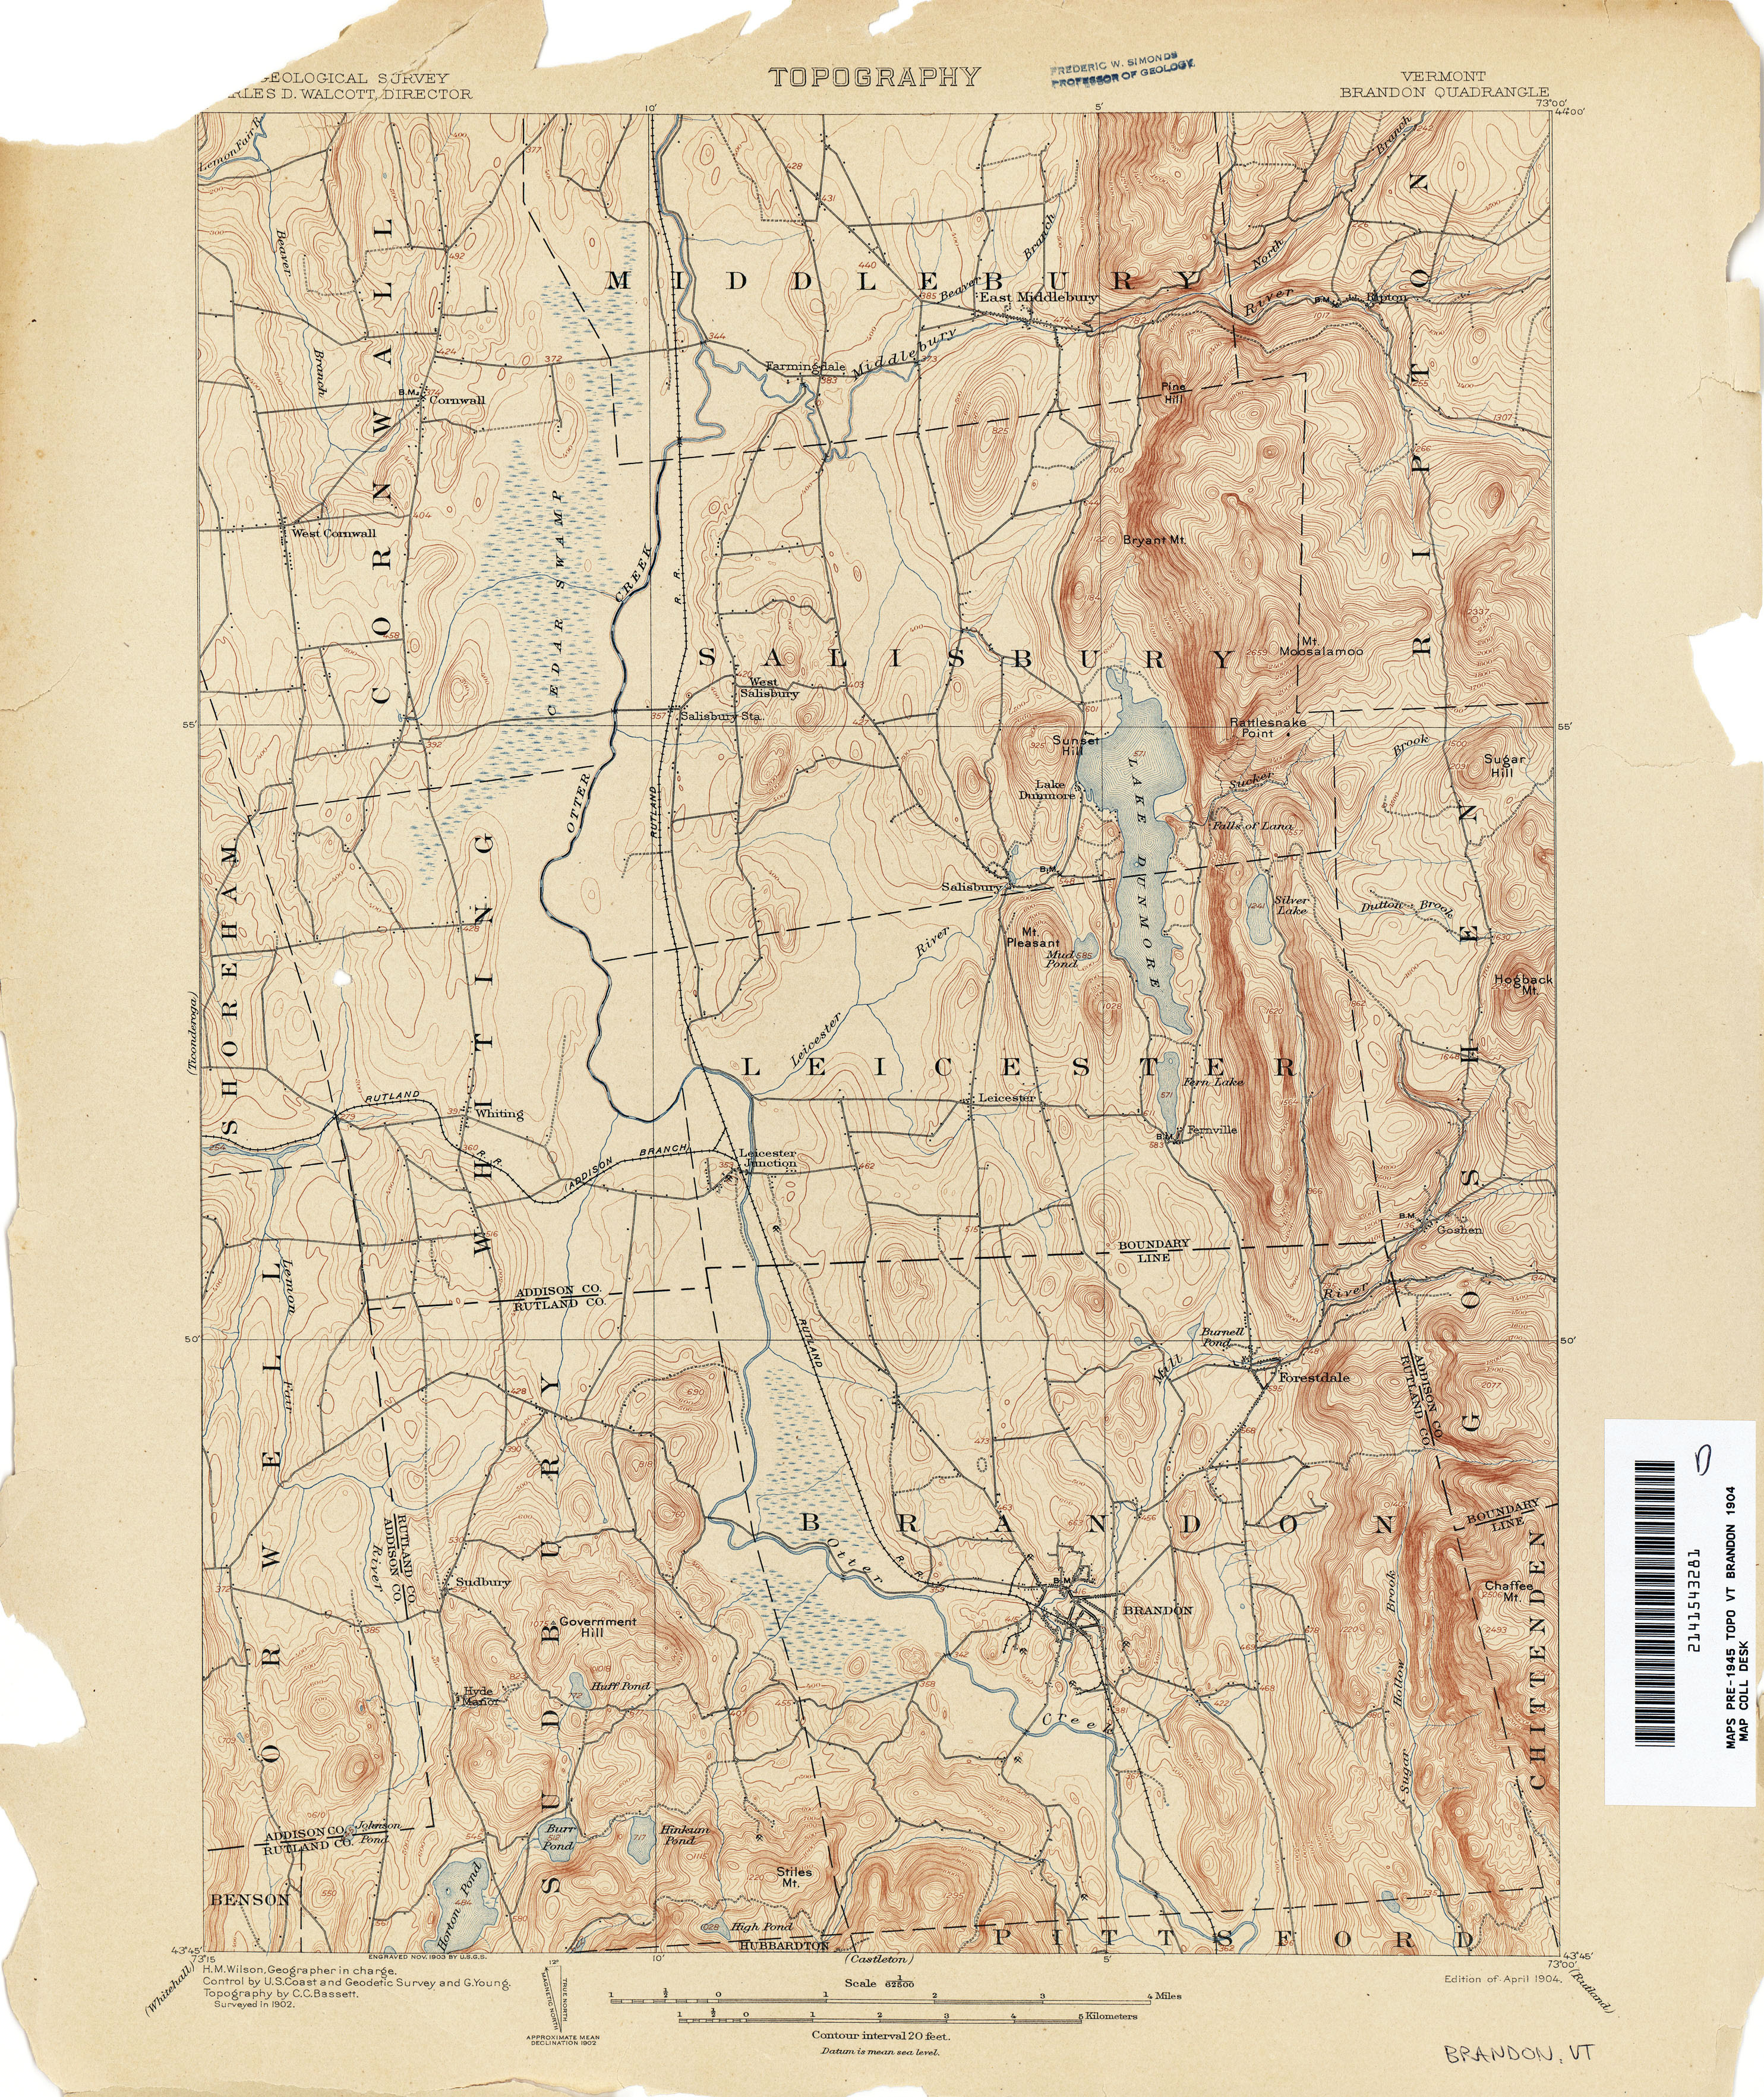 Vermont Historical Topographic Maps - Perry-Castañeda Map Collection ...